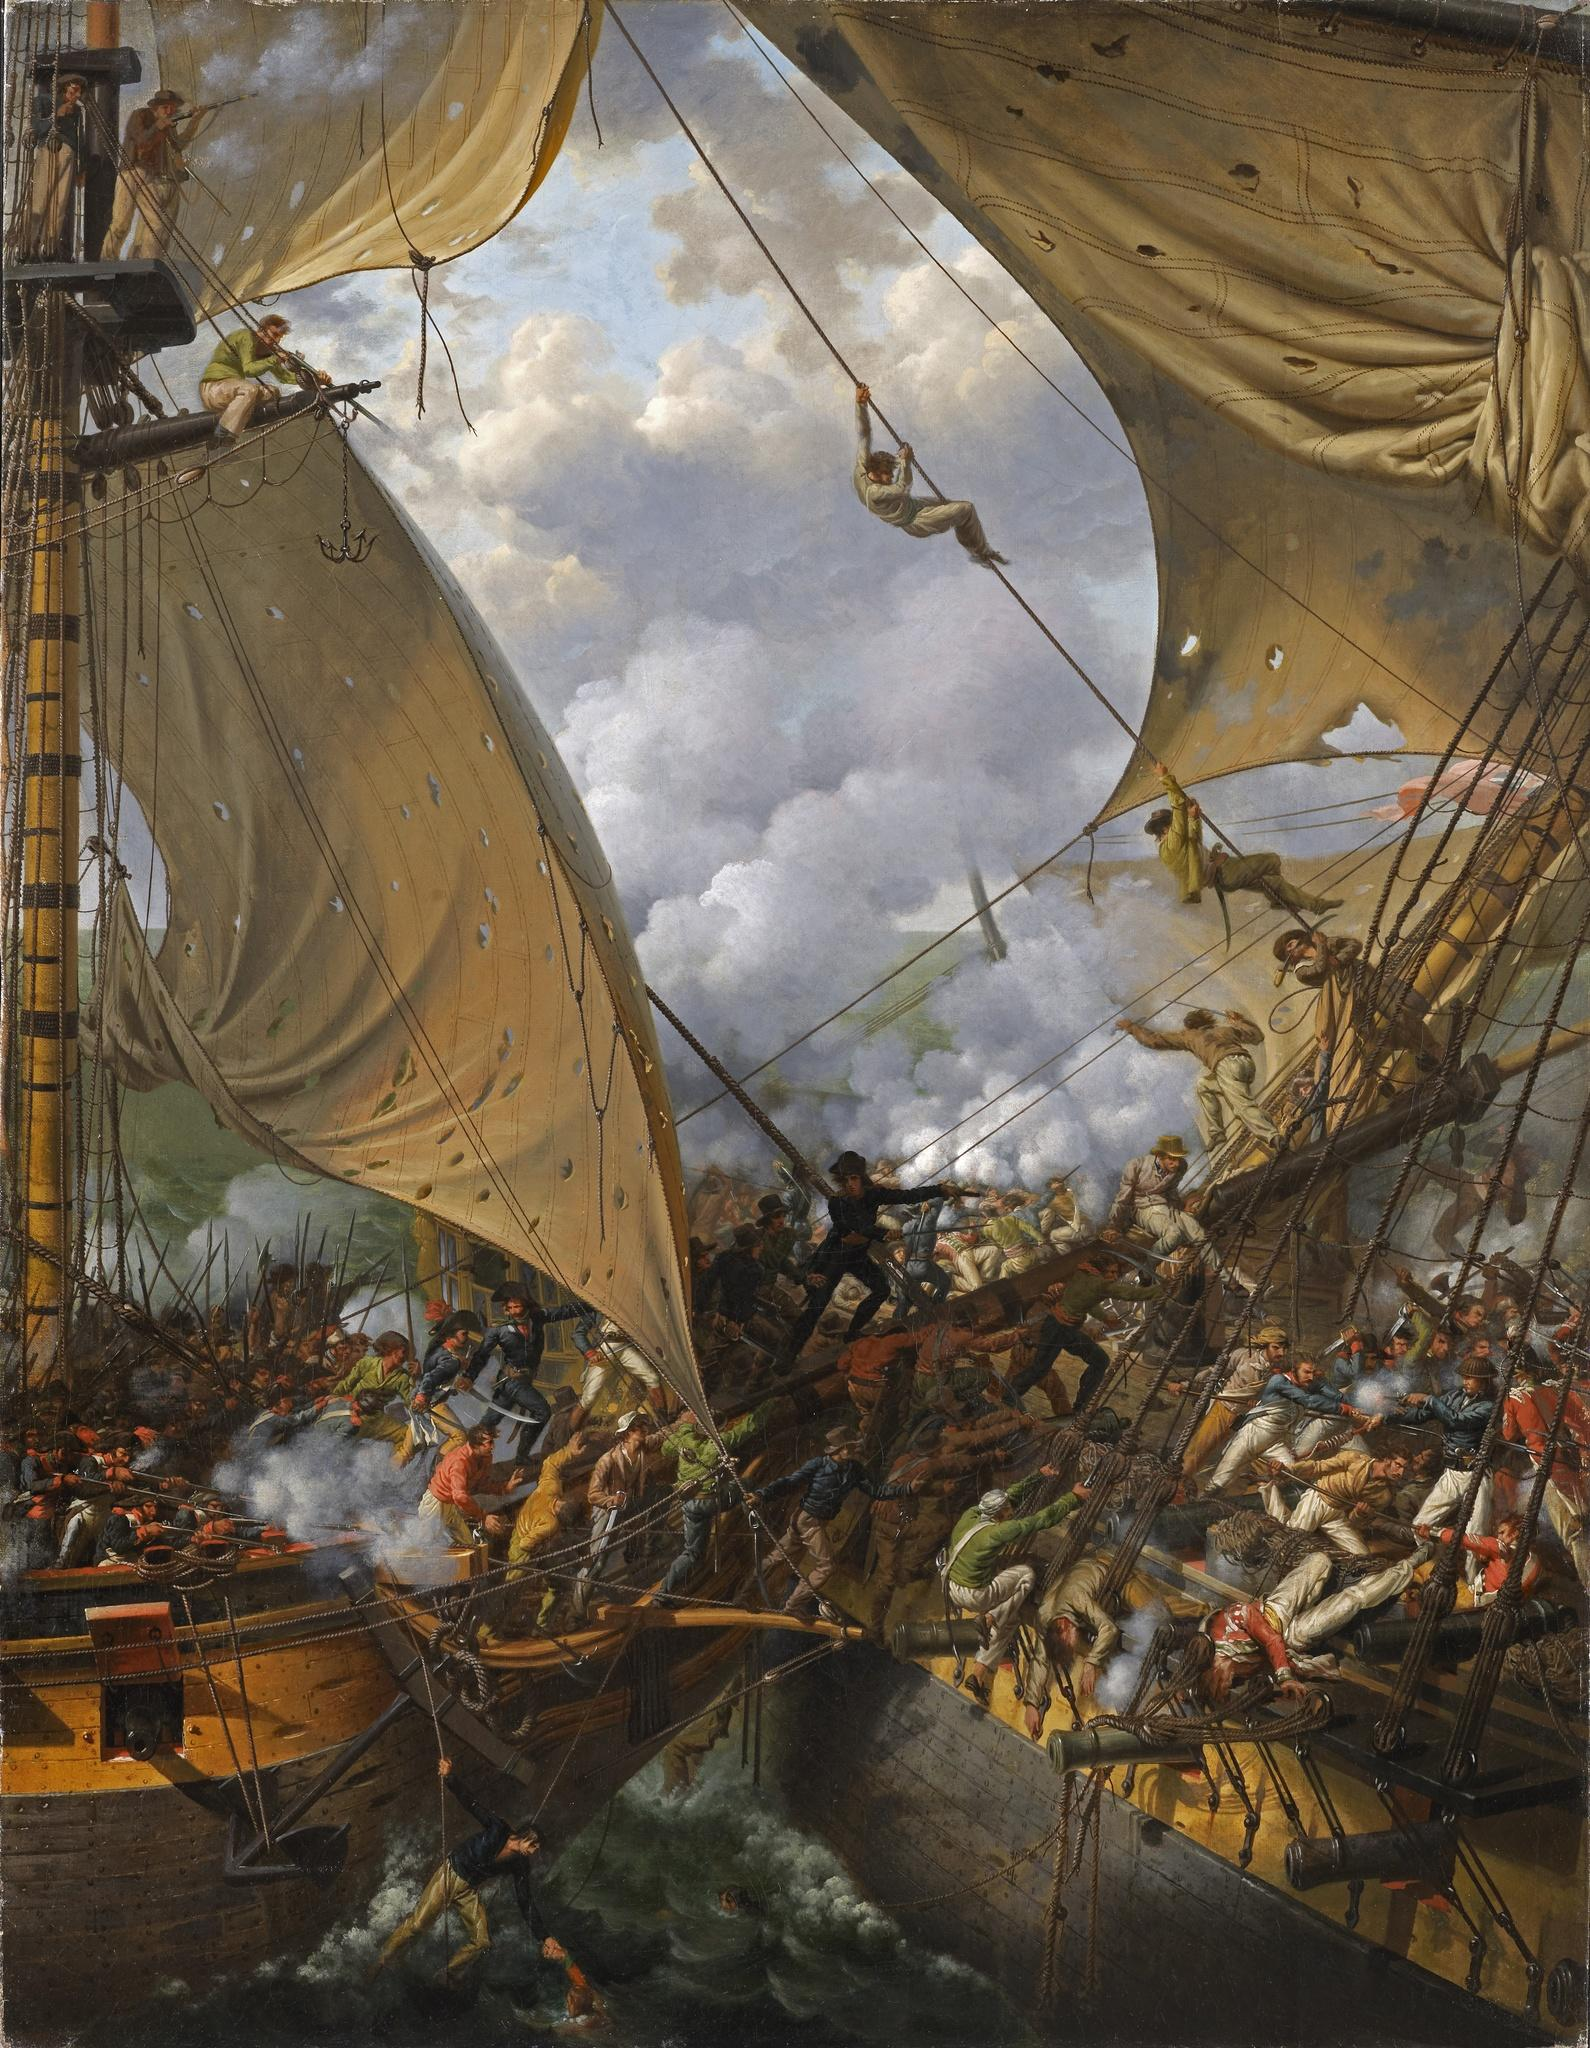 Capture-of-HMS-Ambuscade-by-the-French-corvette-Bayonnaise-14-December-1798